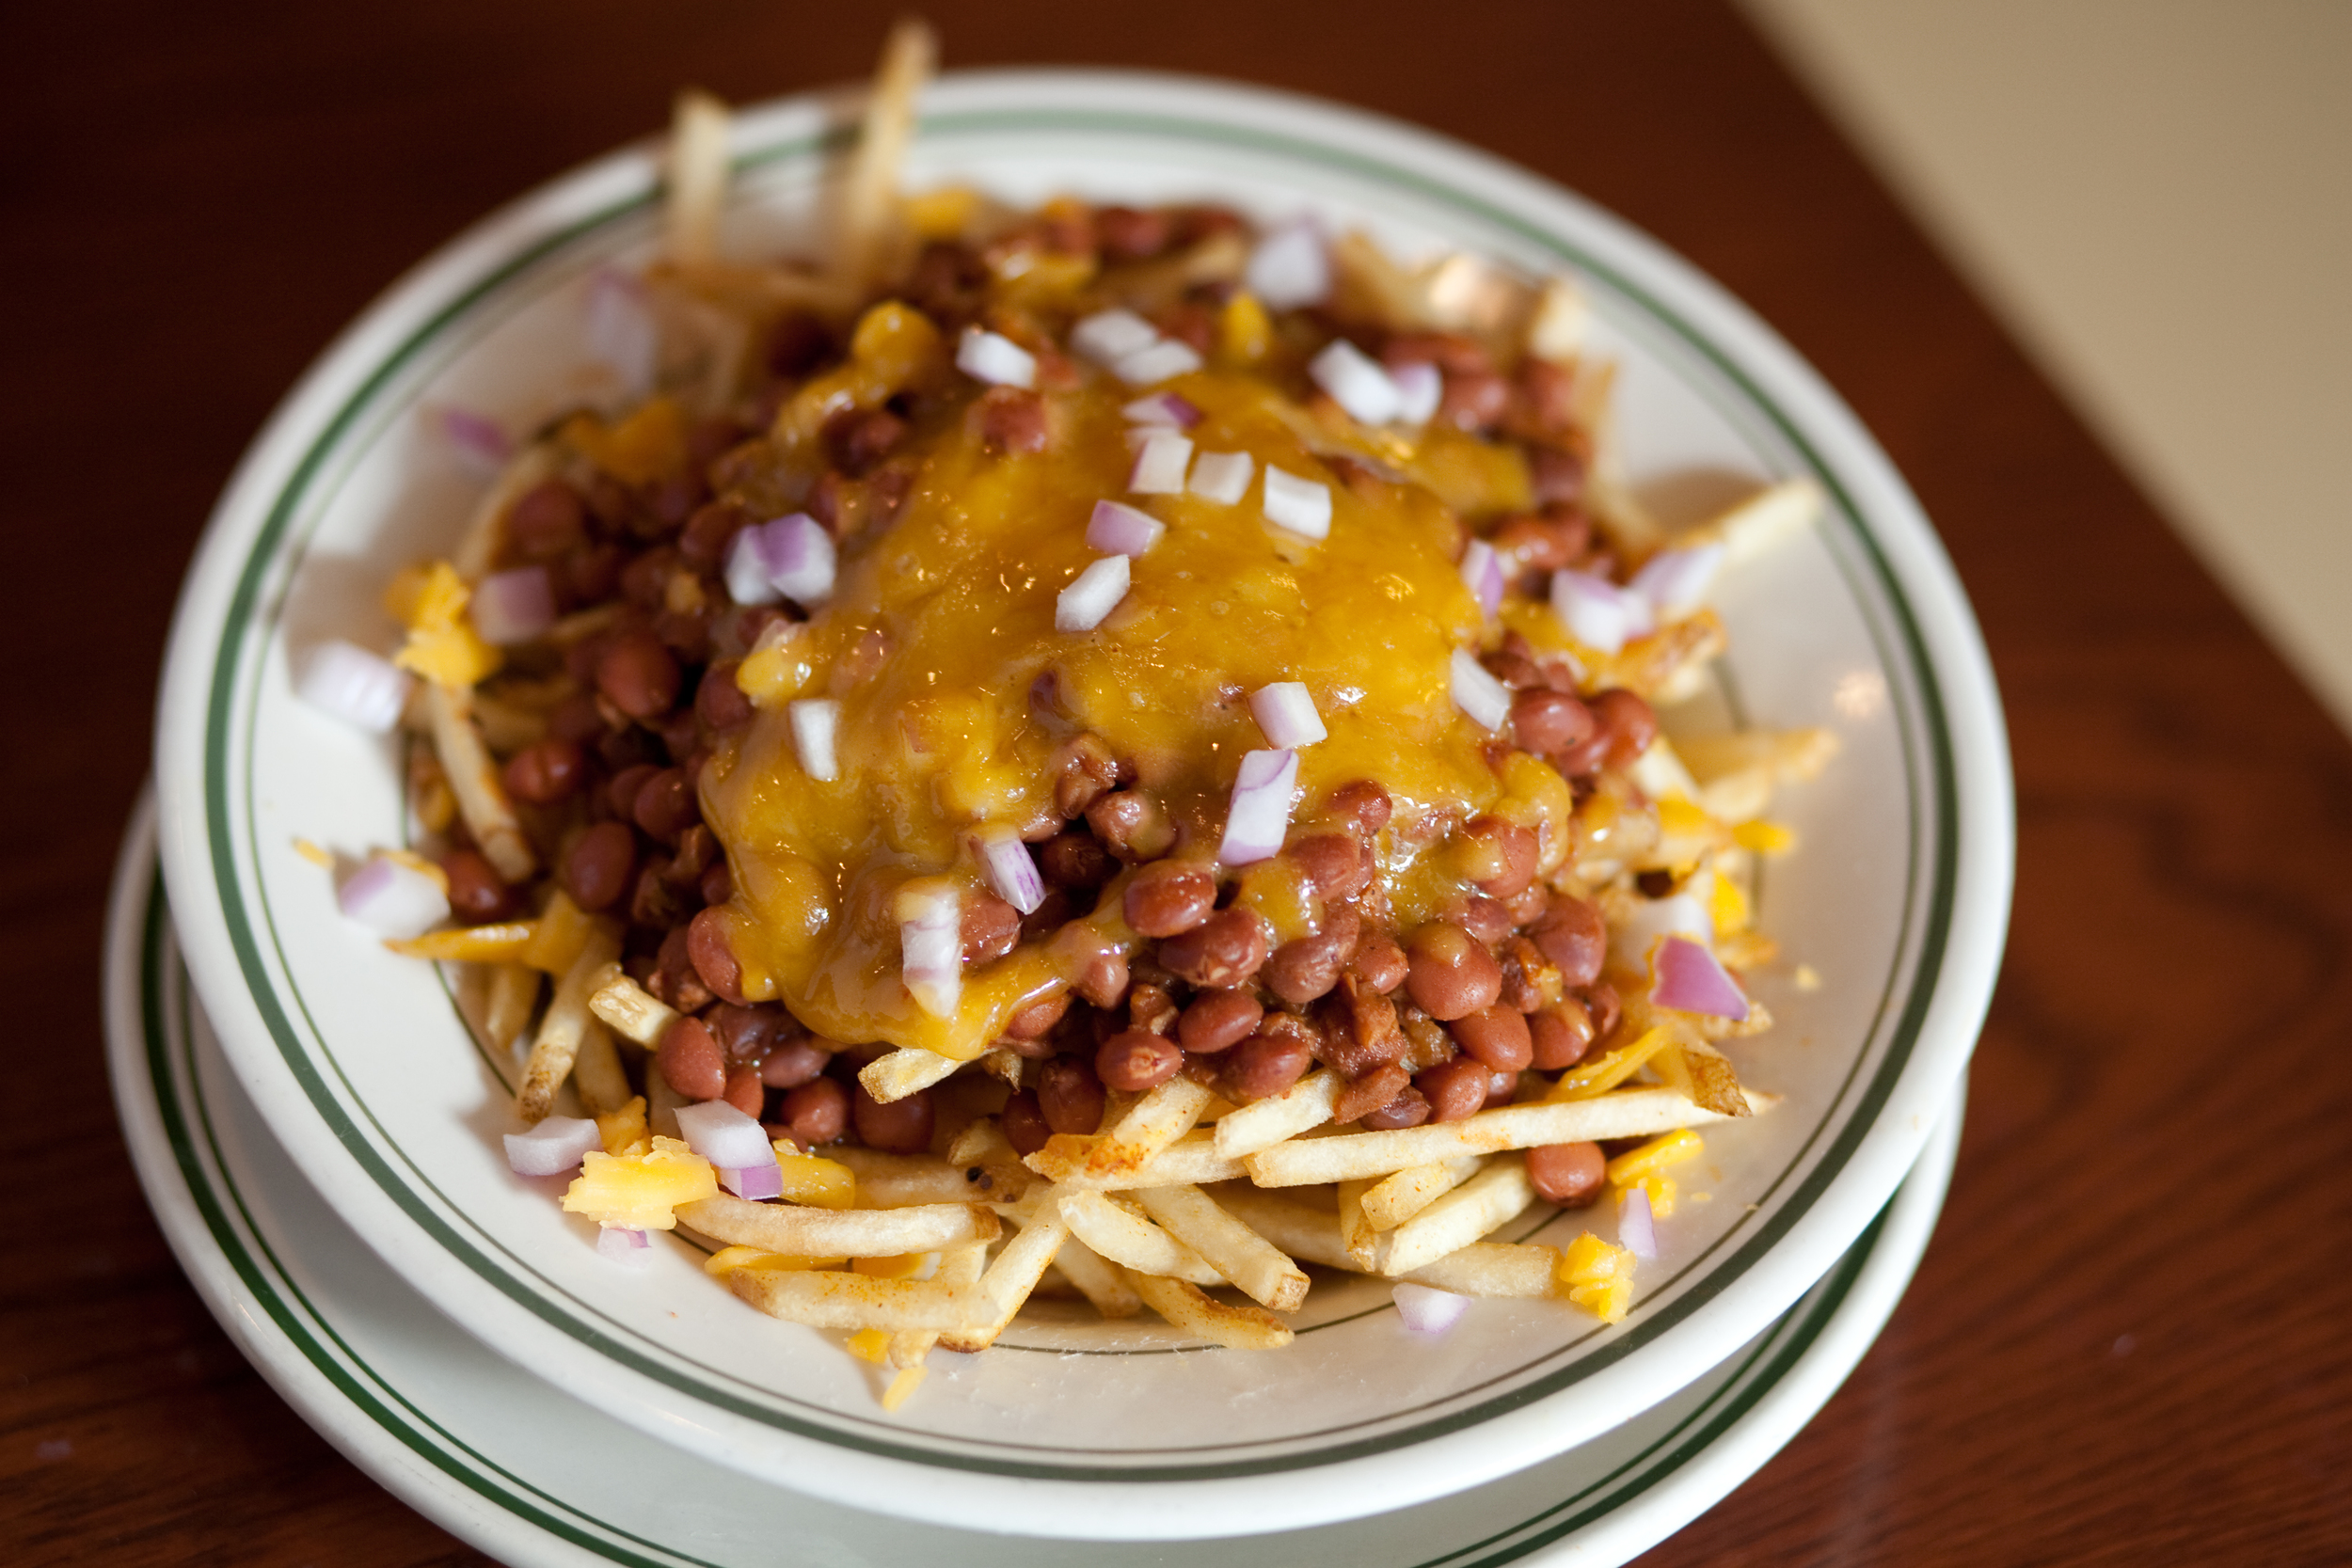 Vegan Chili Fries with Cheddar